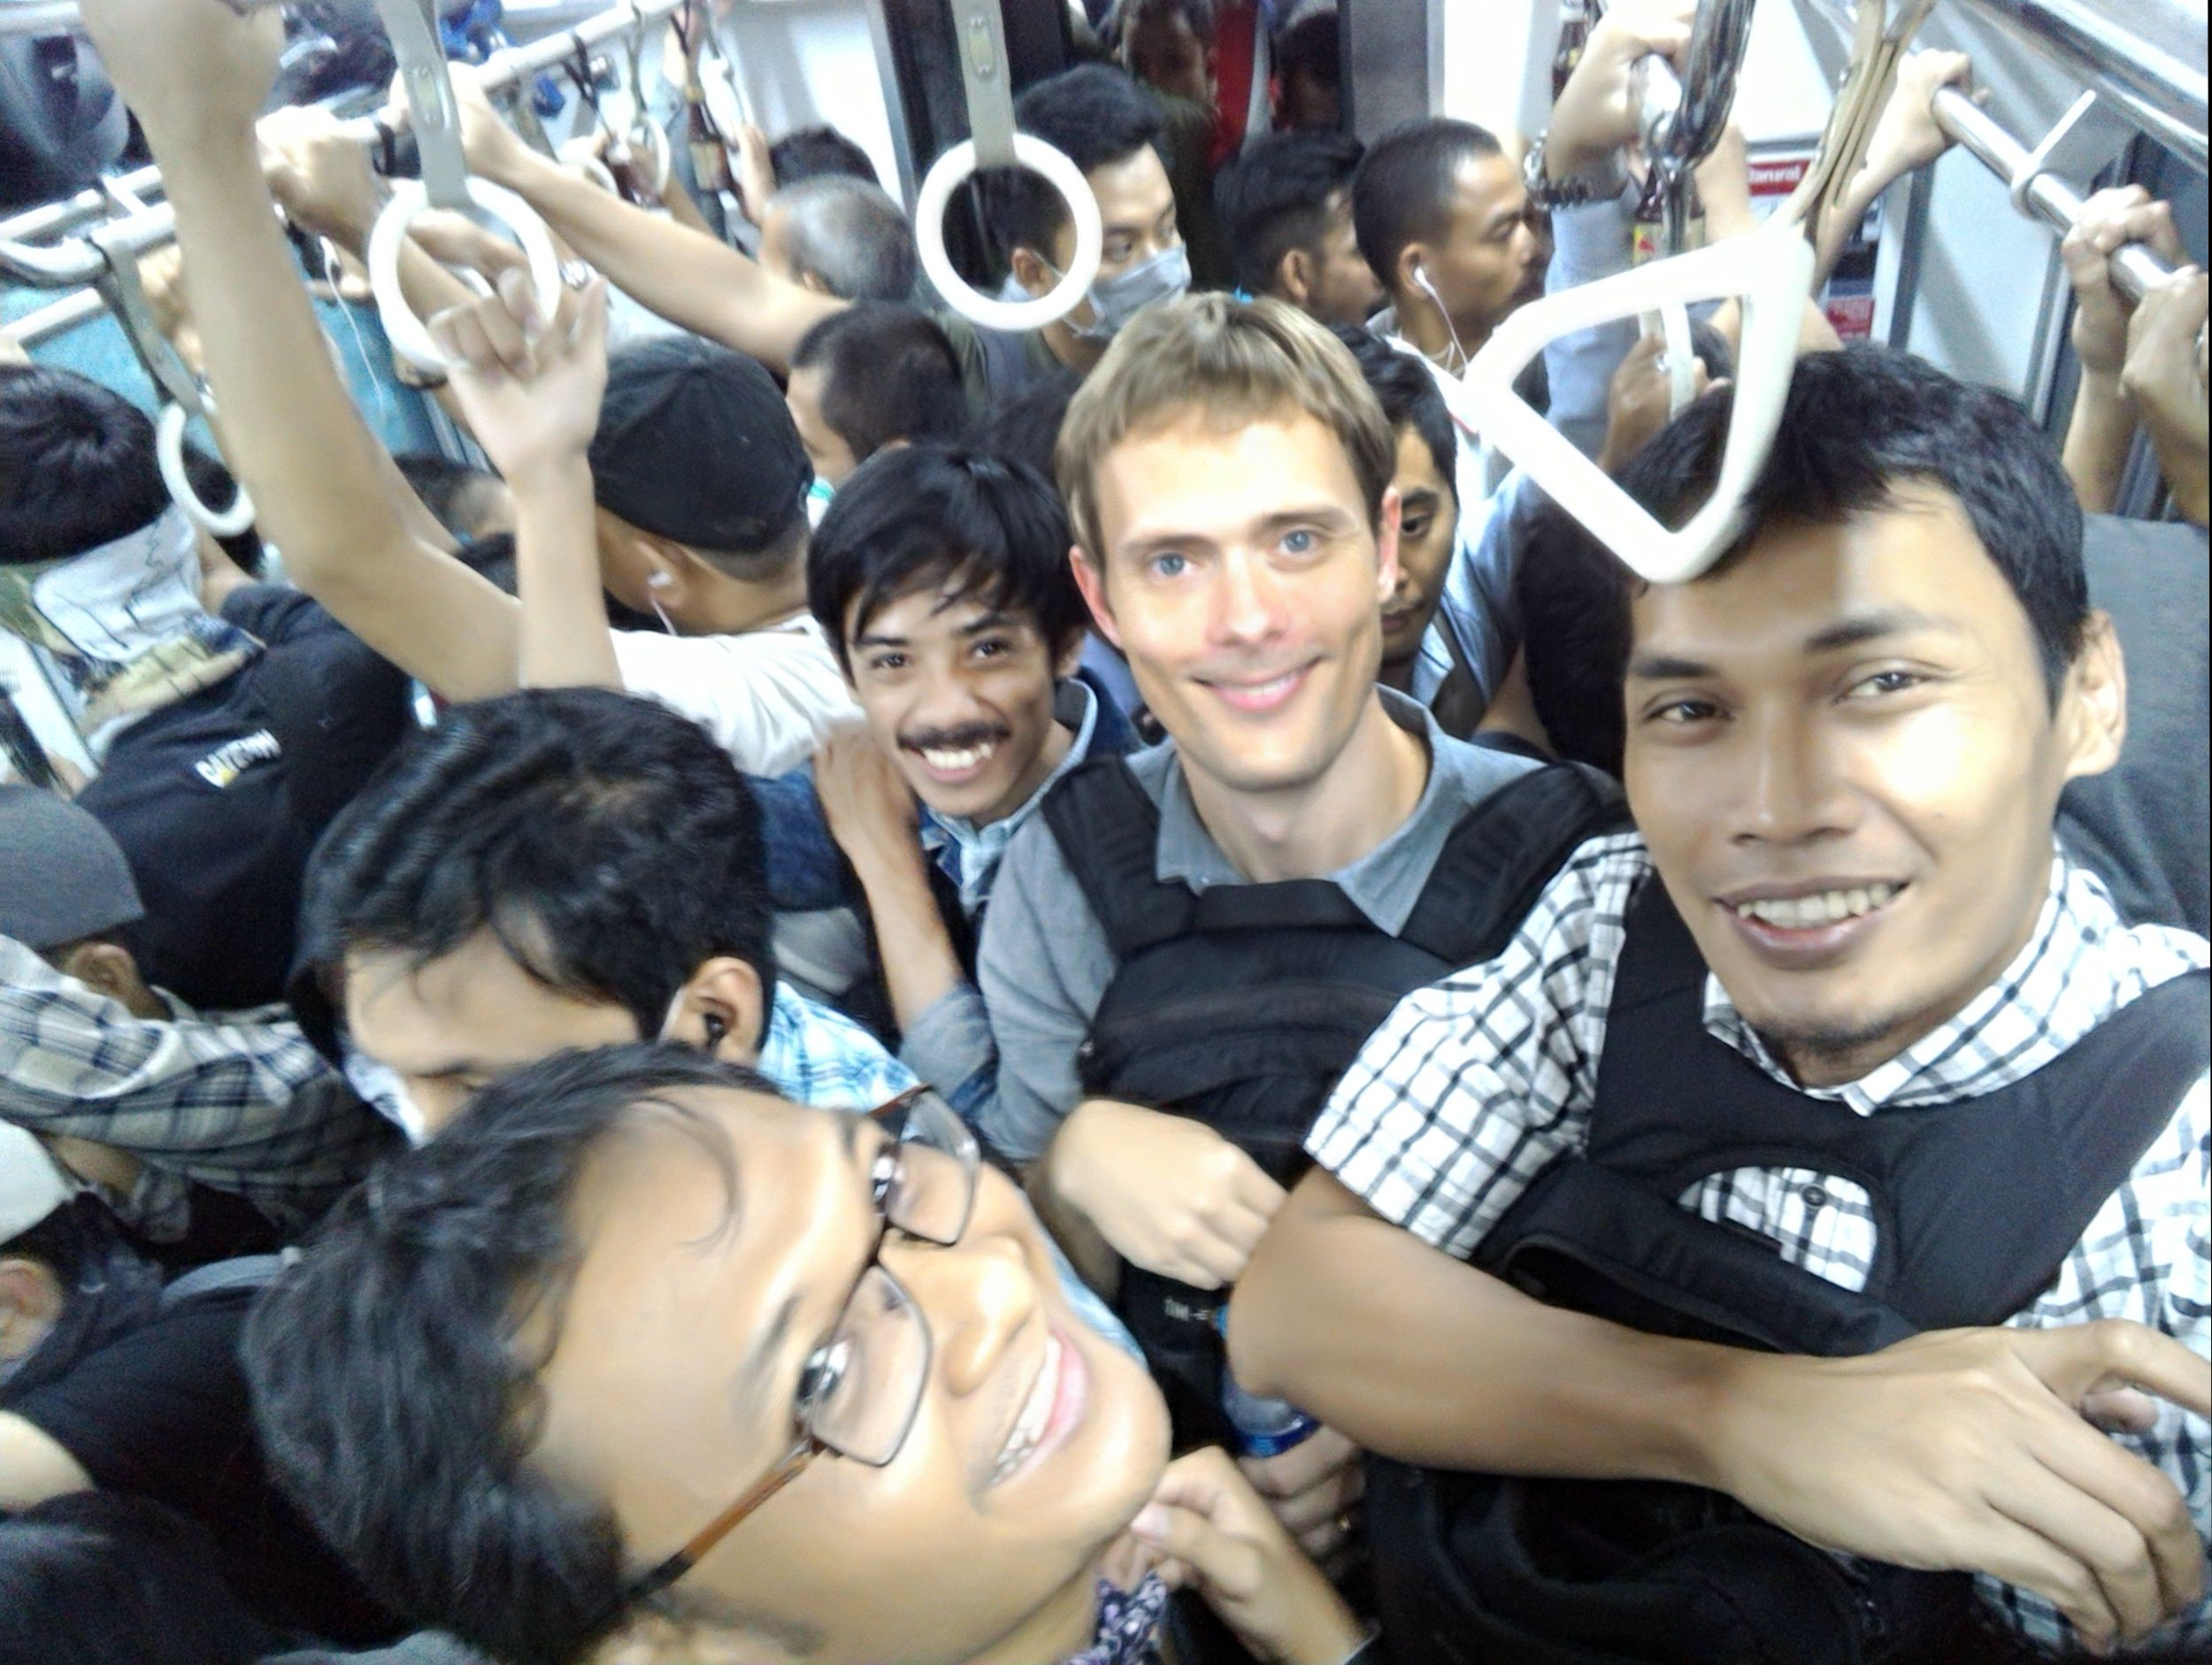 Simon with #Moovit guys enjoying #Jakarta commuter line